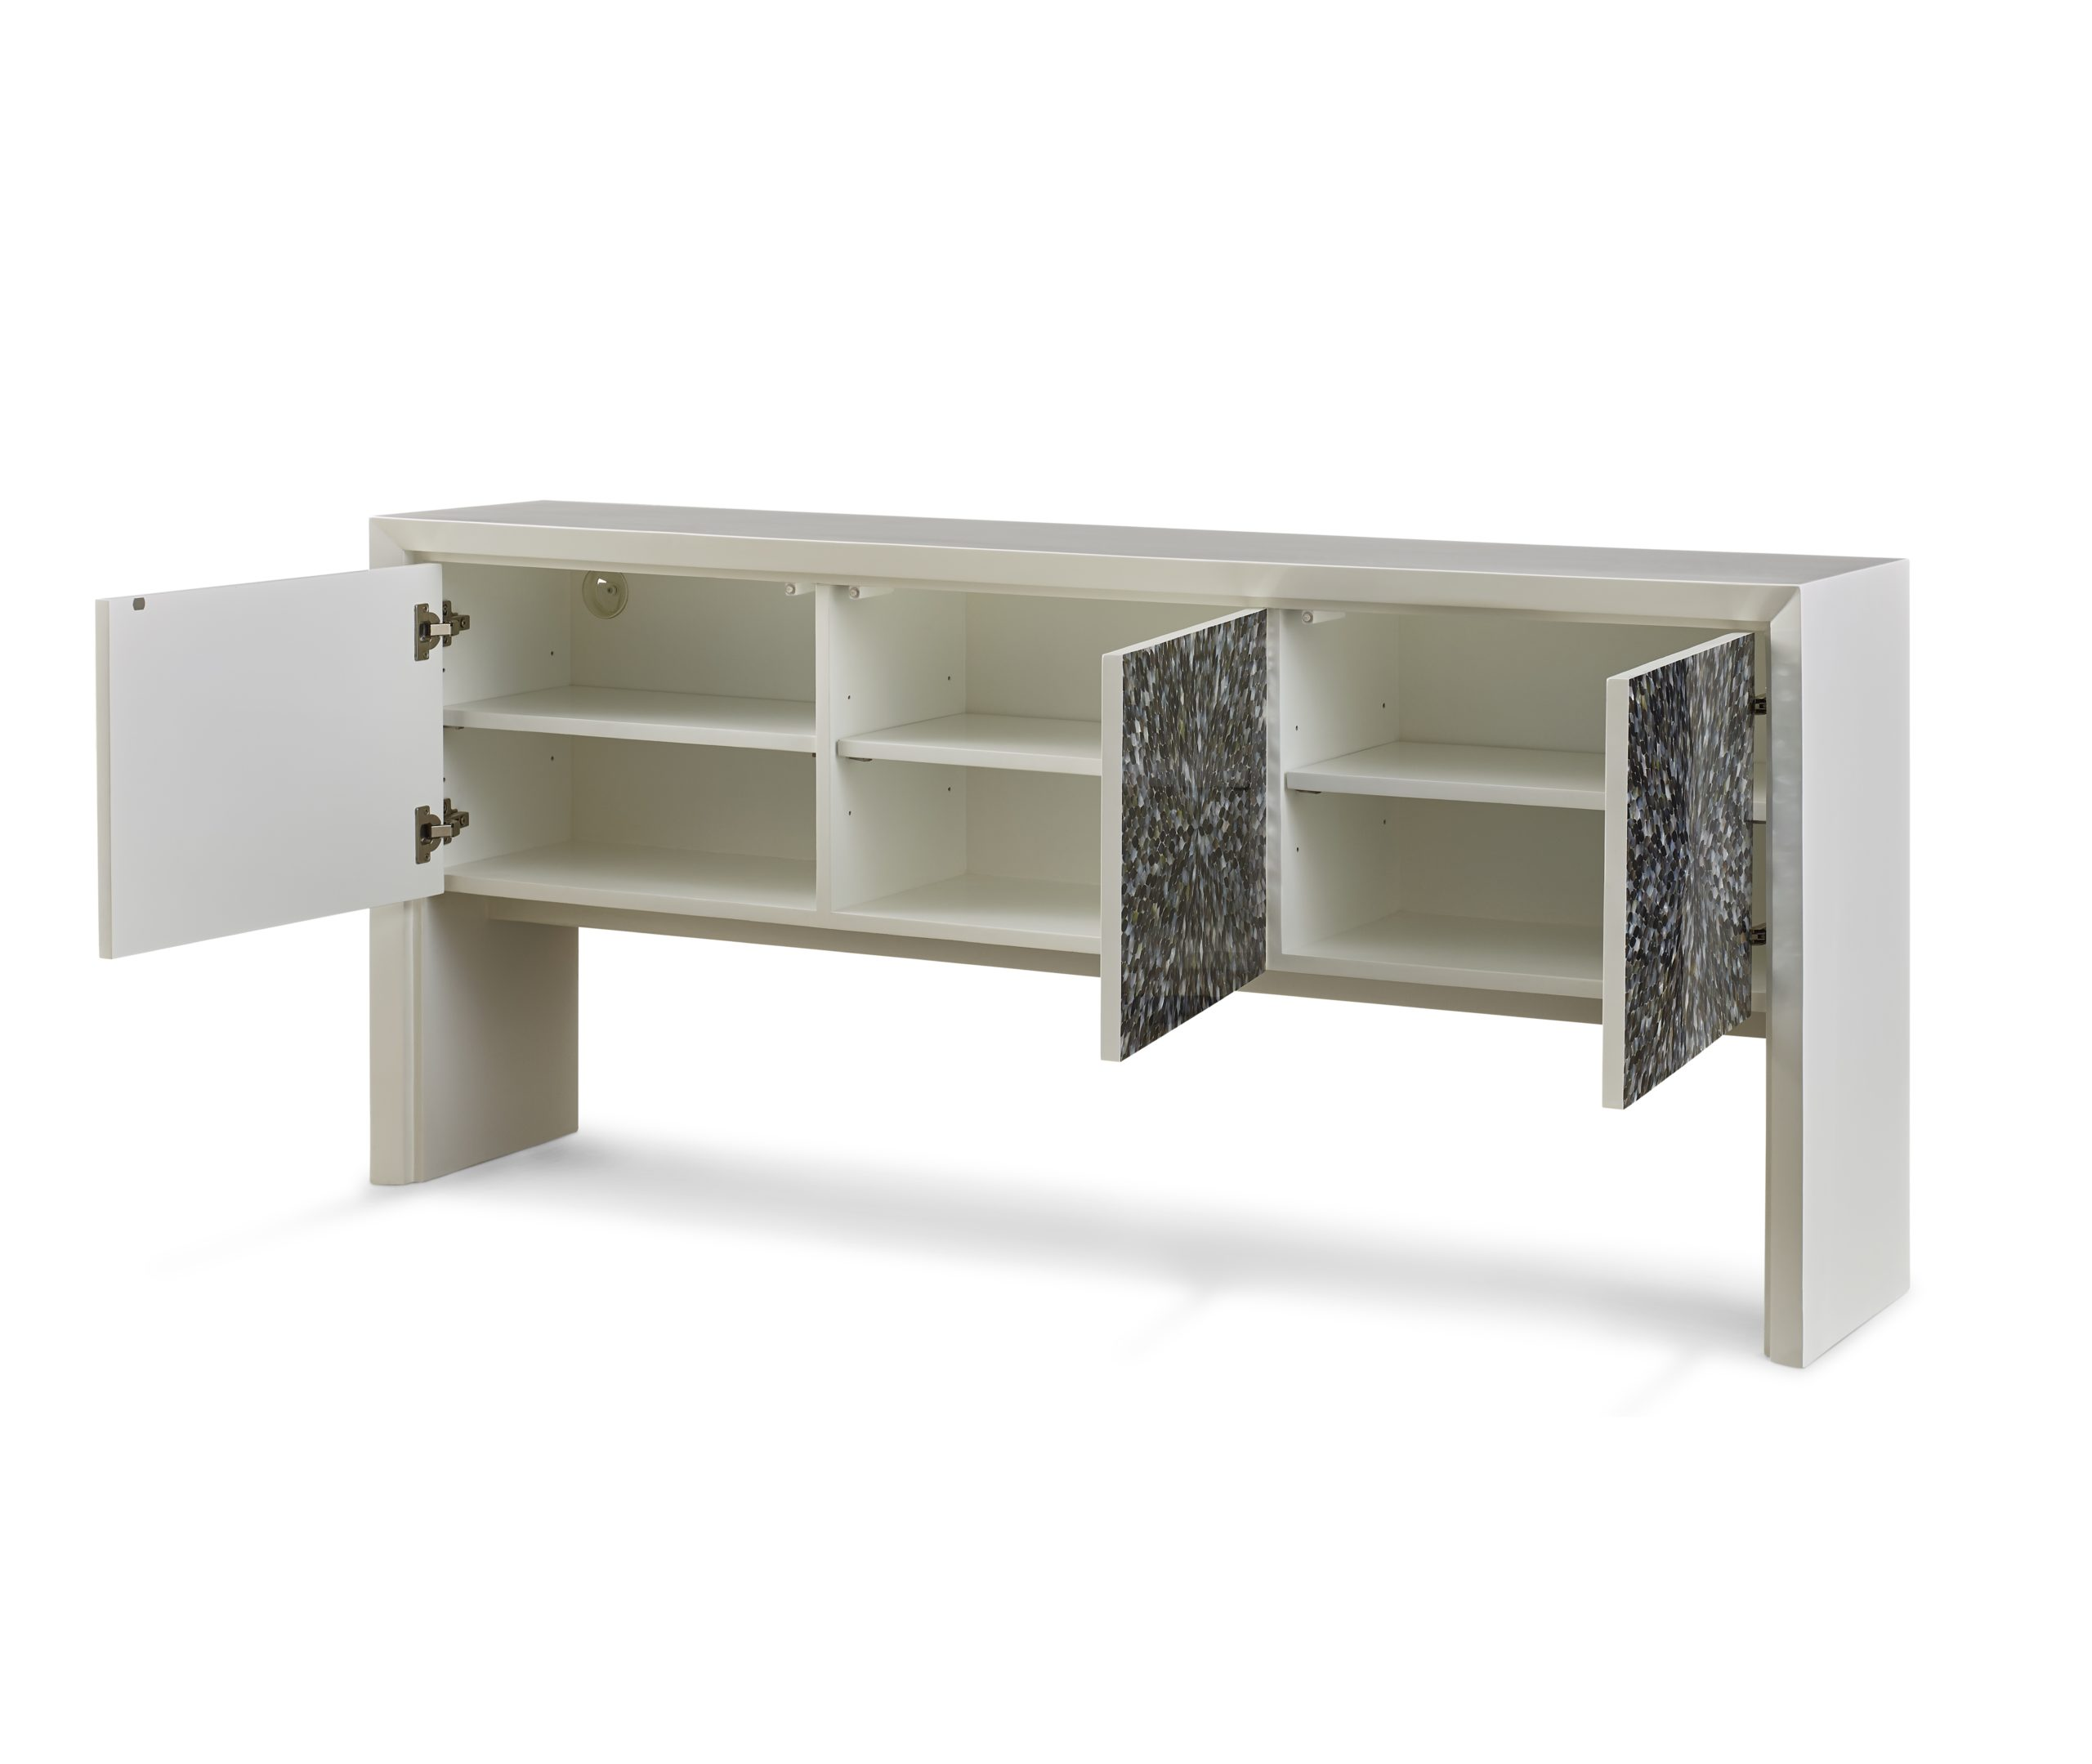 Baker_products_WNWN_nacre_sideboard_BAA3230_OPEN-scaled-1